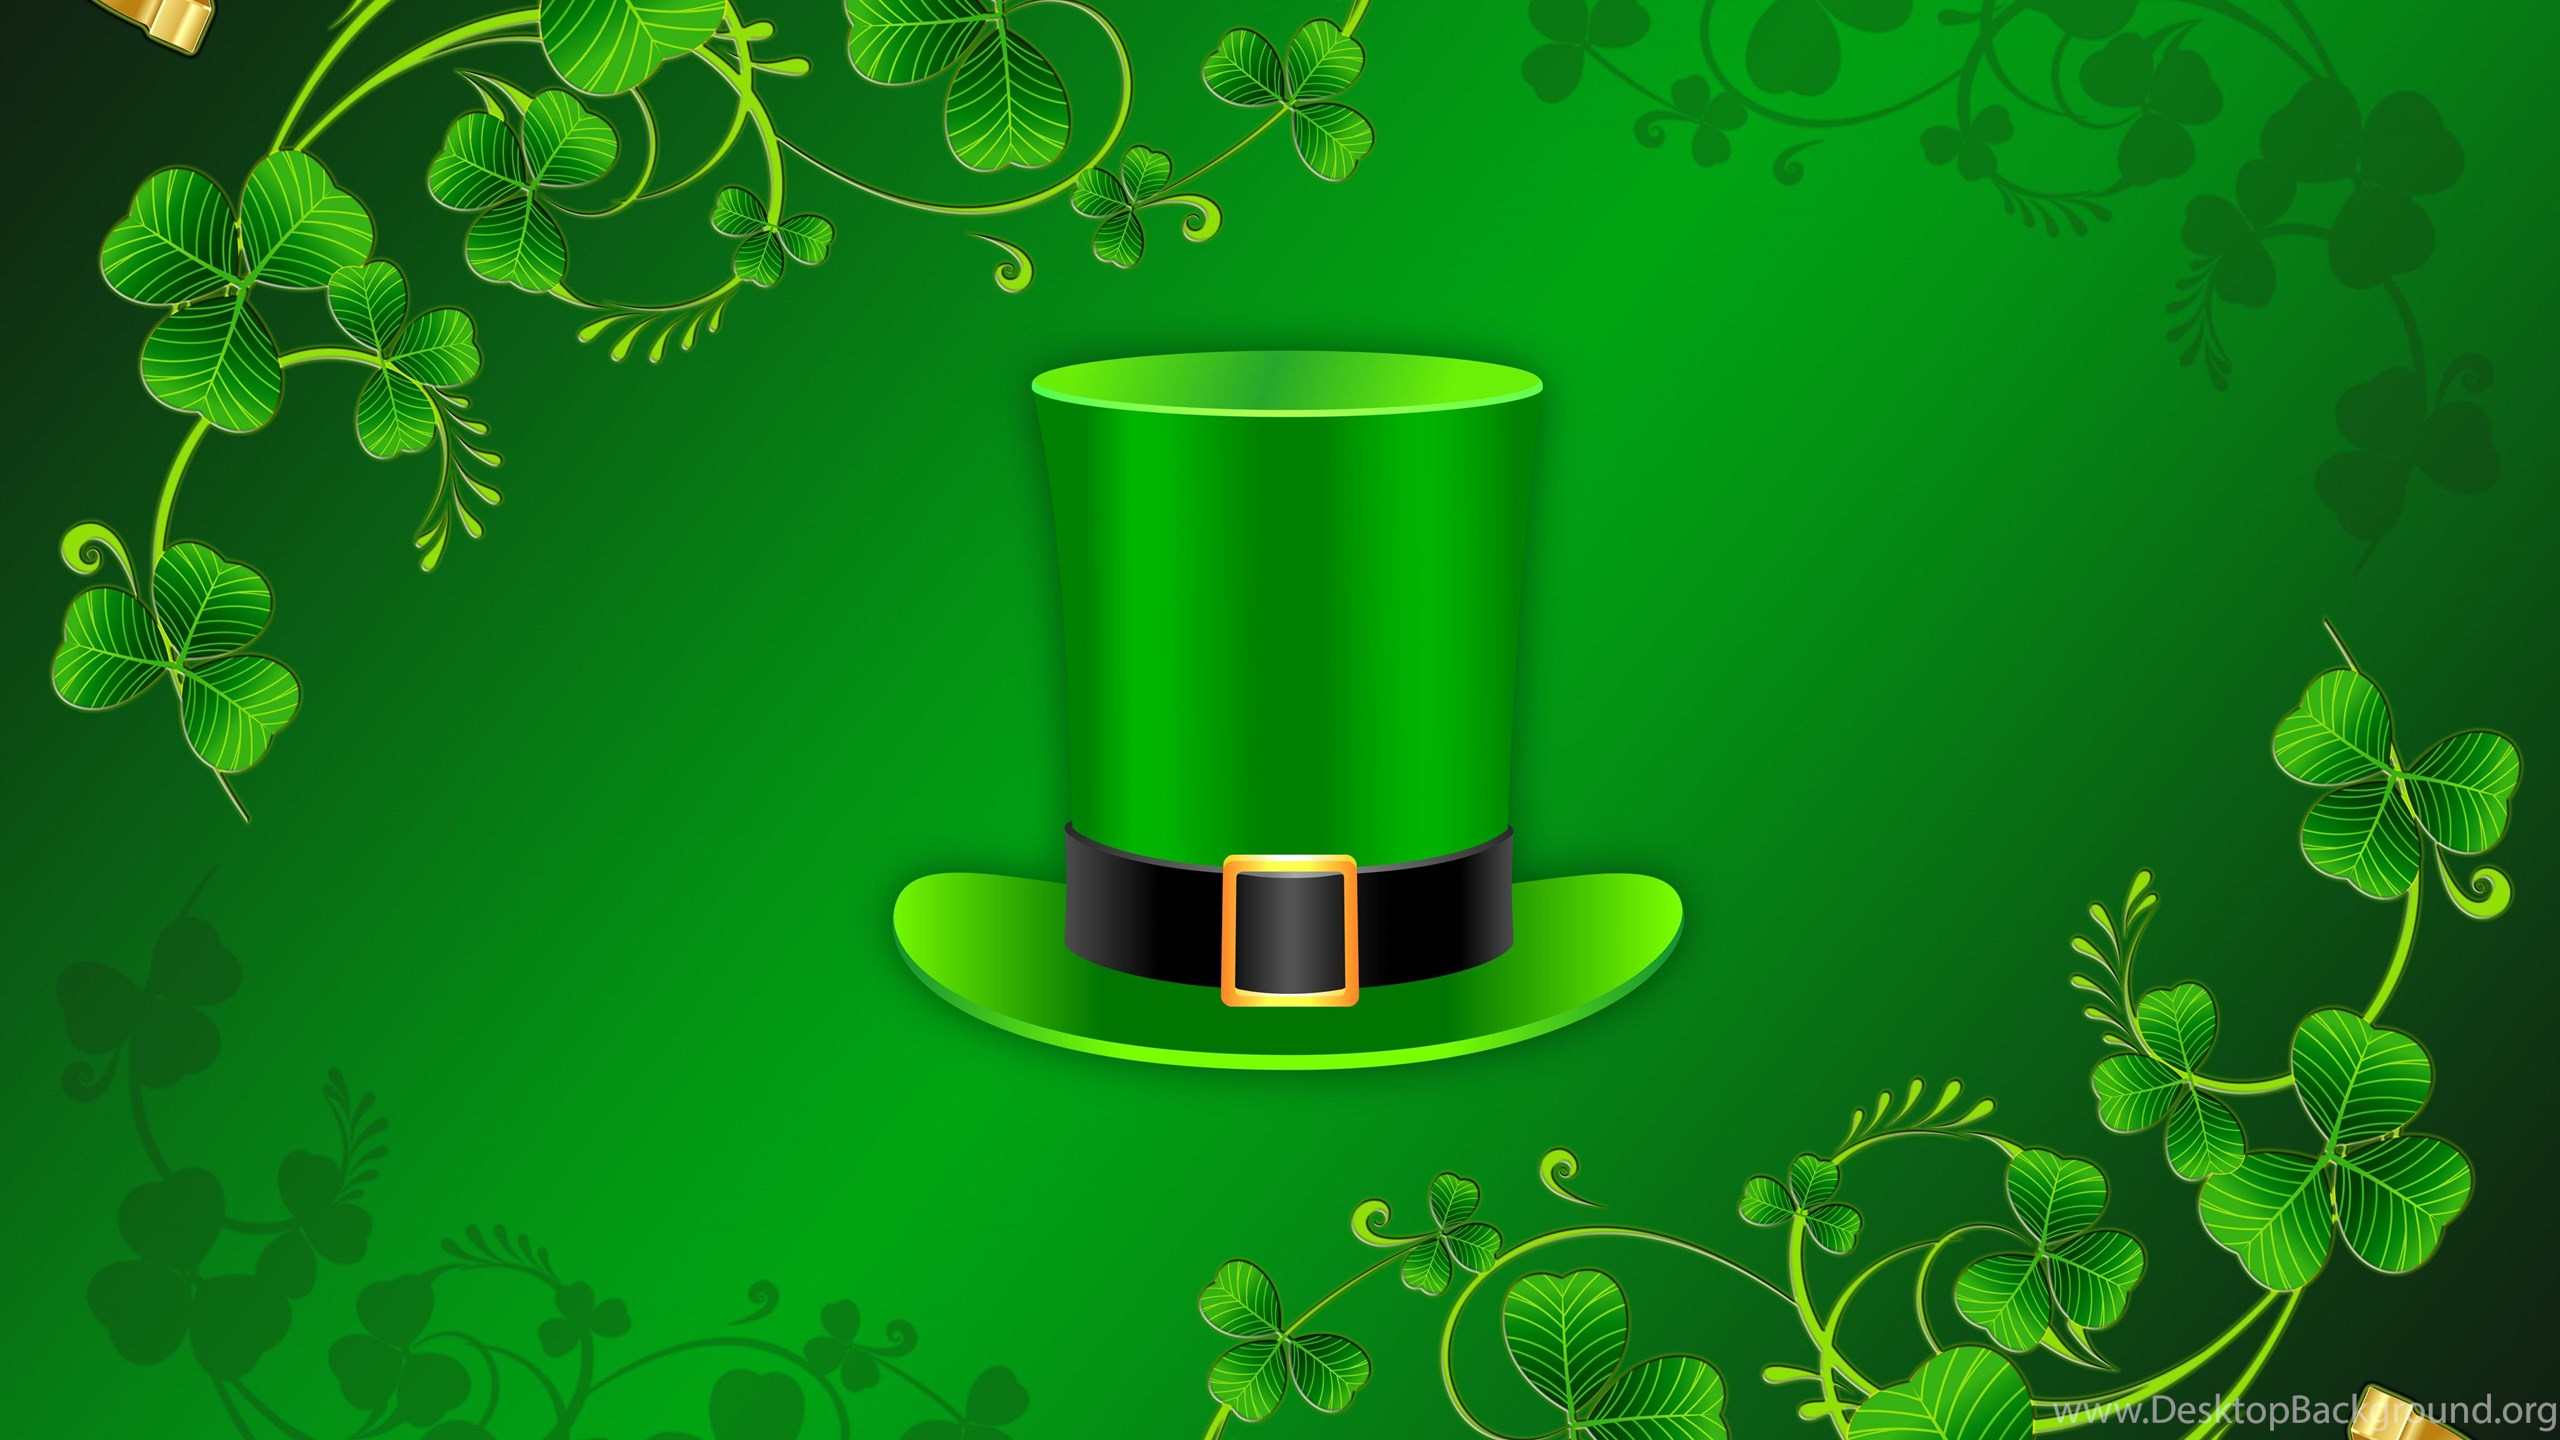 St Patricks Day Wallpaper Iphone St Patrick S Day Bing Images Desktop Background